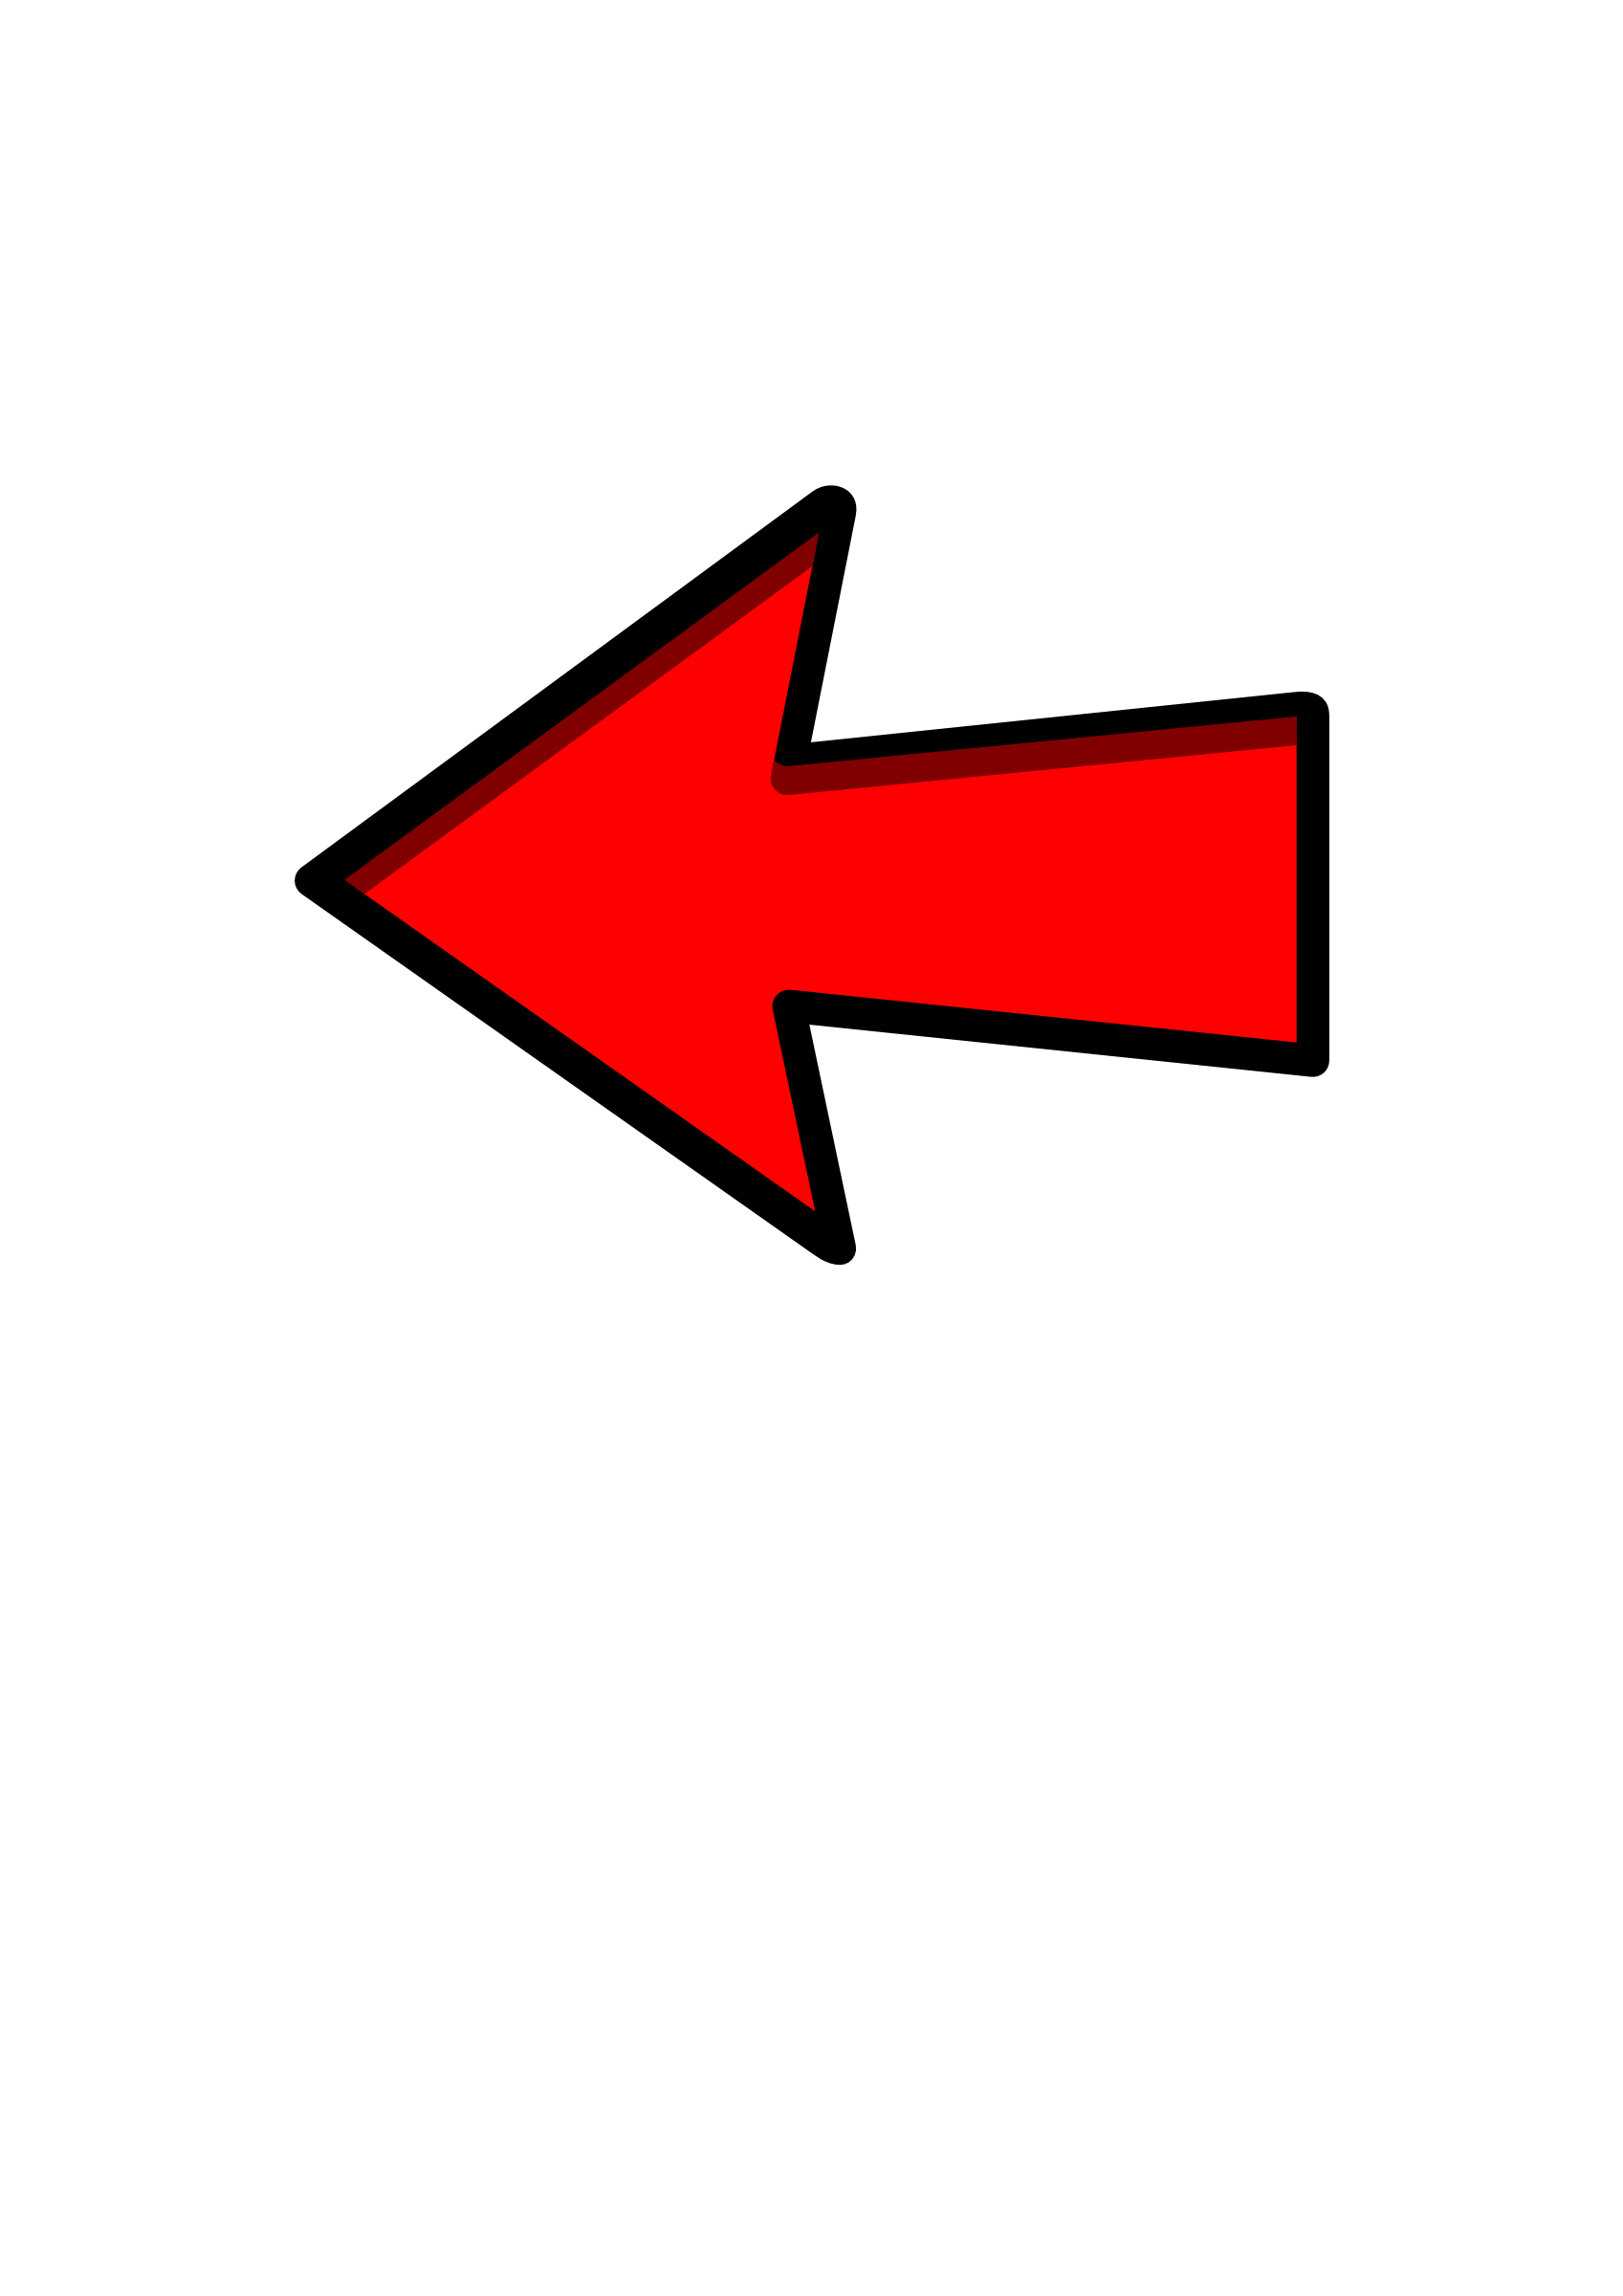 Red curved arrow left clipart royalty free download Images: Arrow royalty free download